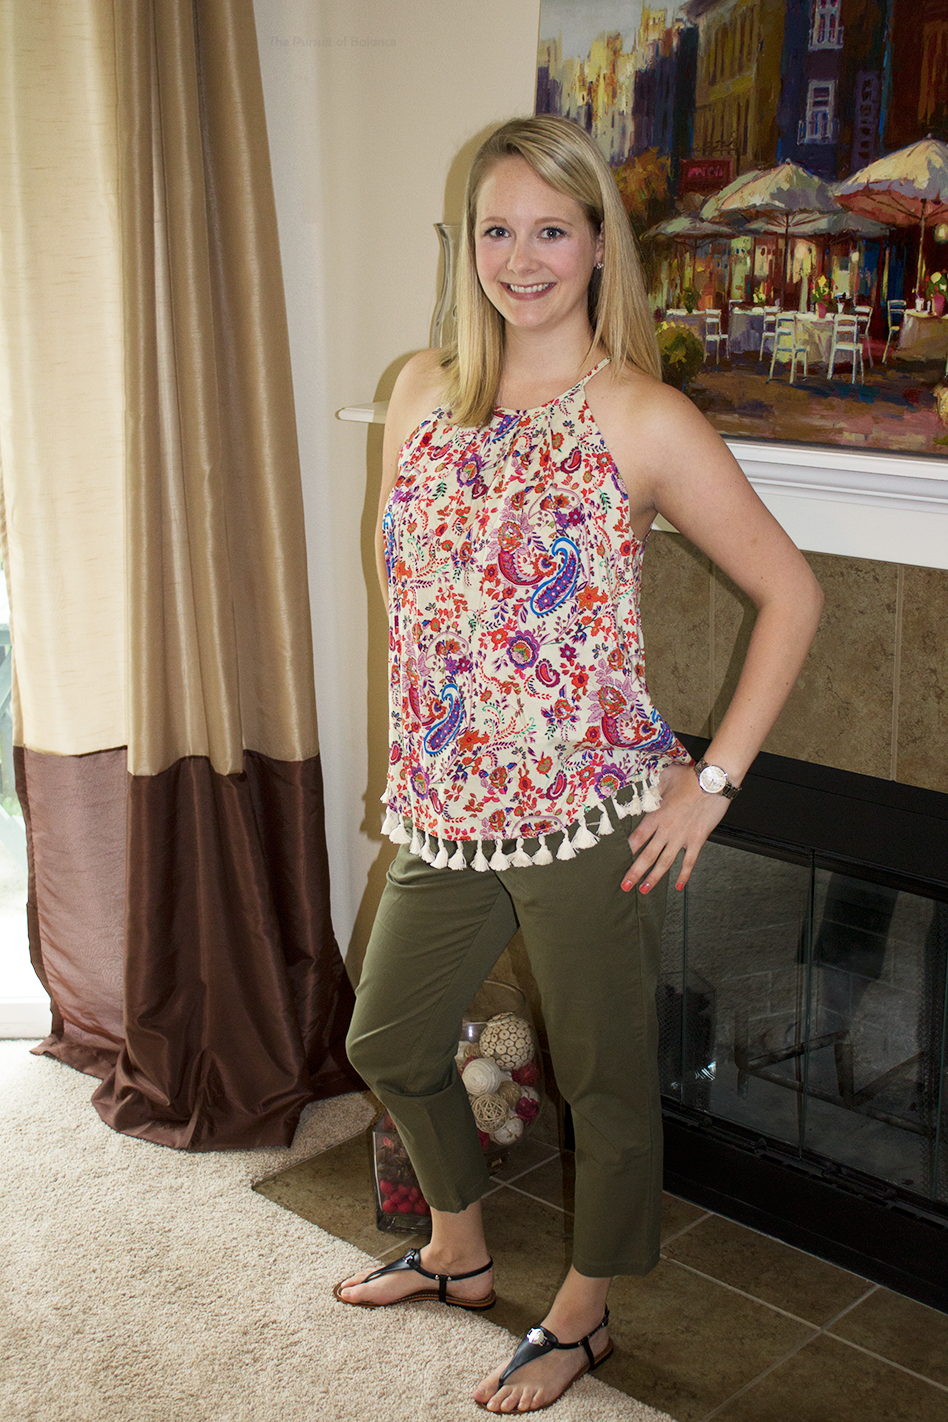 Pants are Stitch Fix (see them in fuchsia below, a friend gave them to me, size 6, love them.